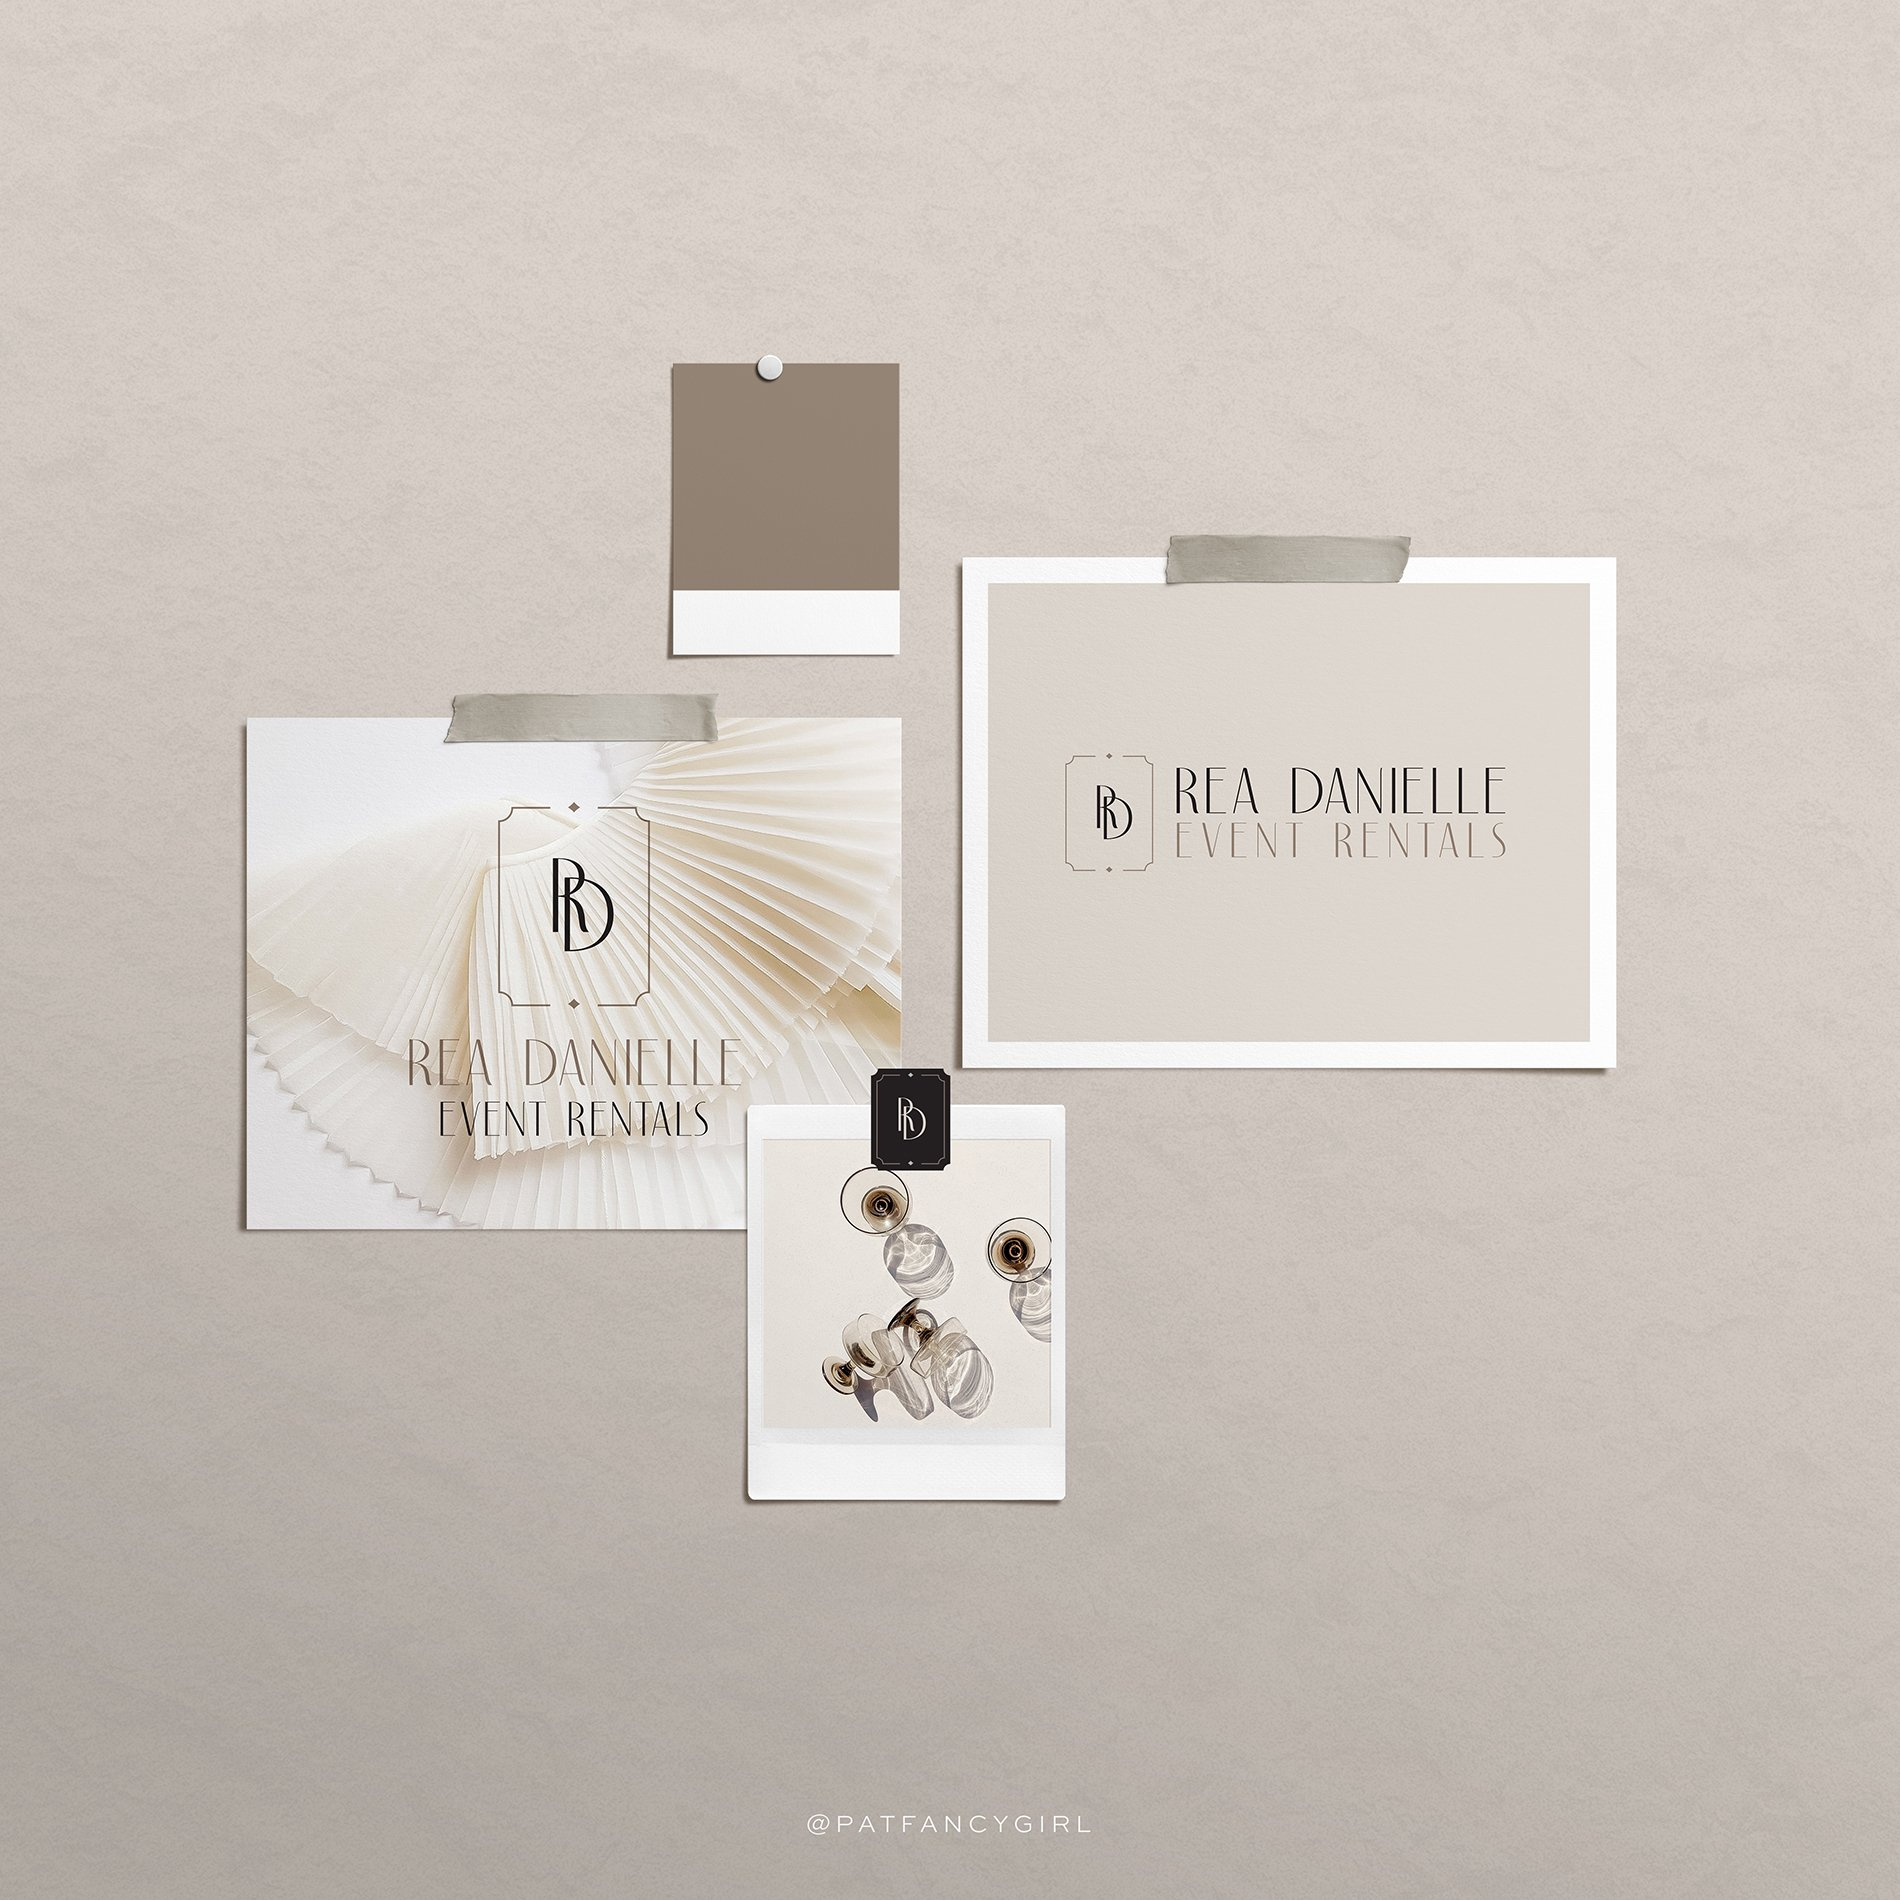 elegant & luxurious brand identitiy design for RD Luxury Rentals by Fancy Girl Design Studio | stylish and sophisticated logo design for an event rental company